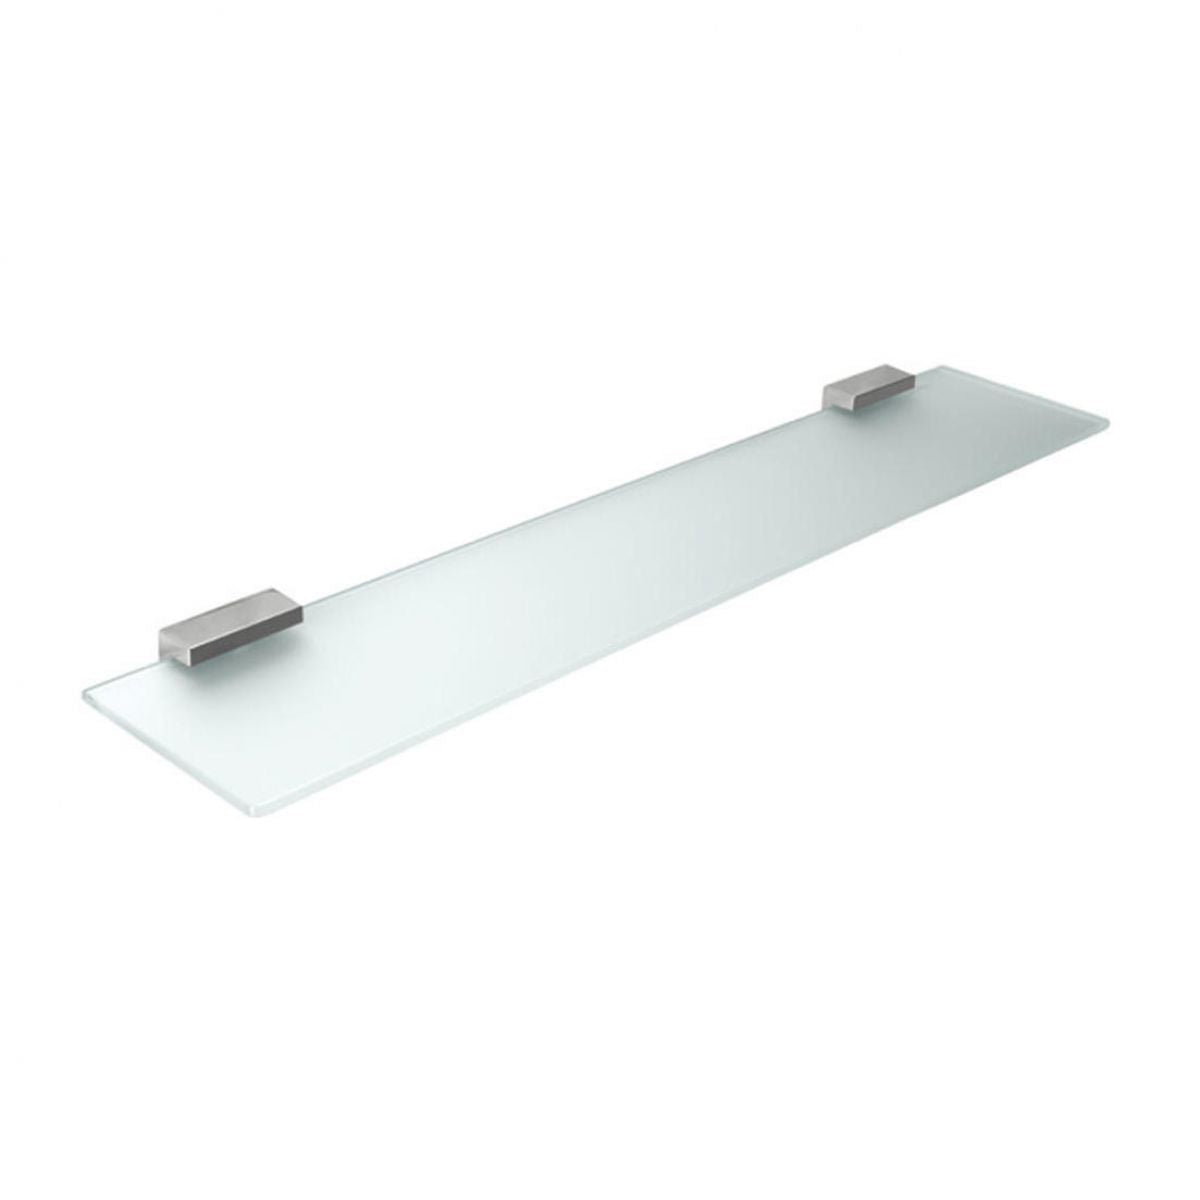 Inda Lea Glass Shelf Chrome - Blue Sky Bathrooms Ltd